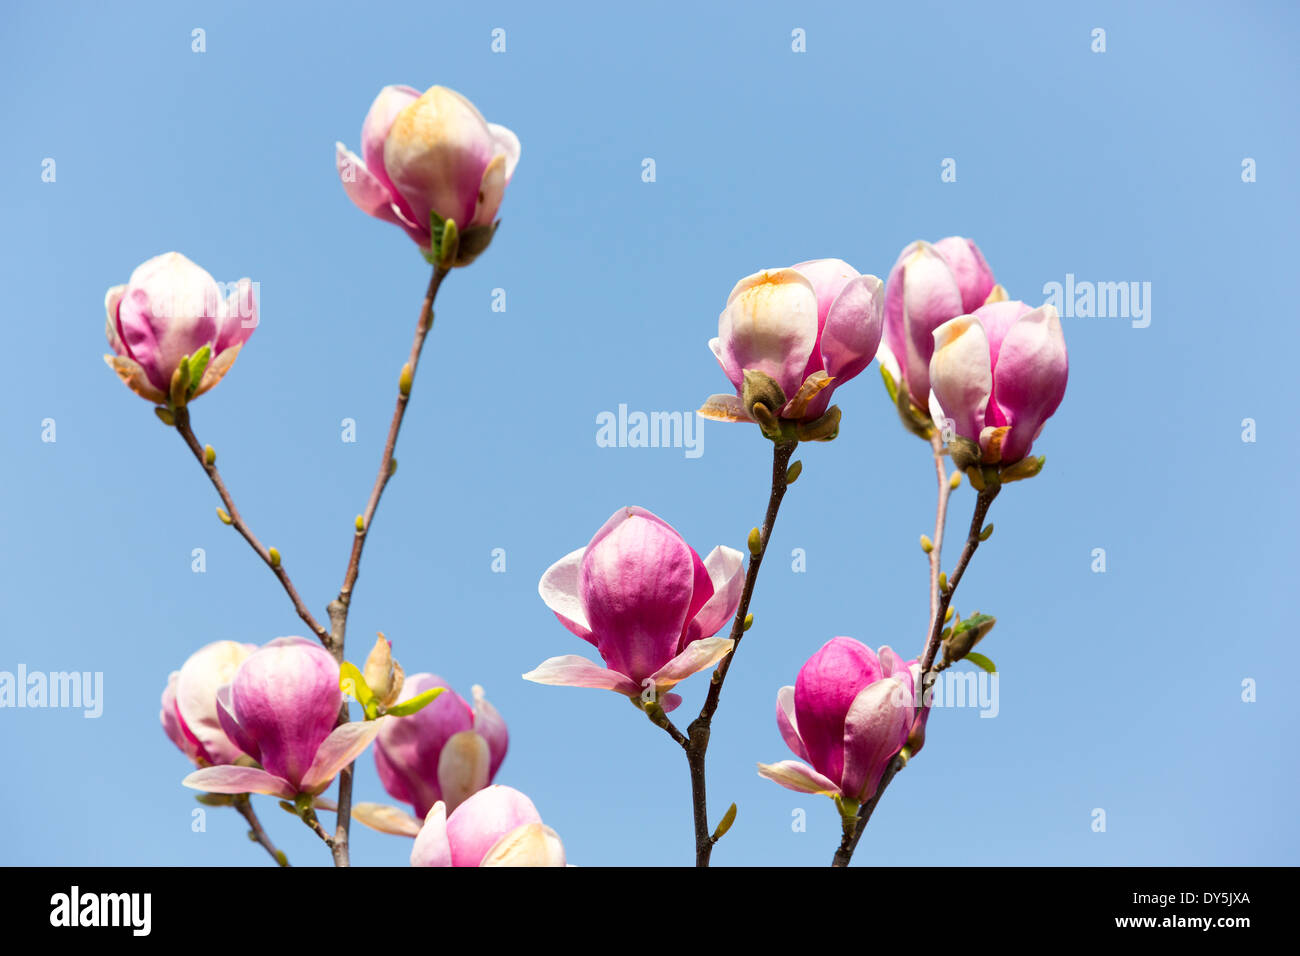 Spring time flowers against blue sky - Stock Image